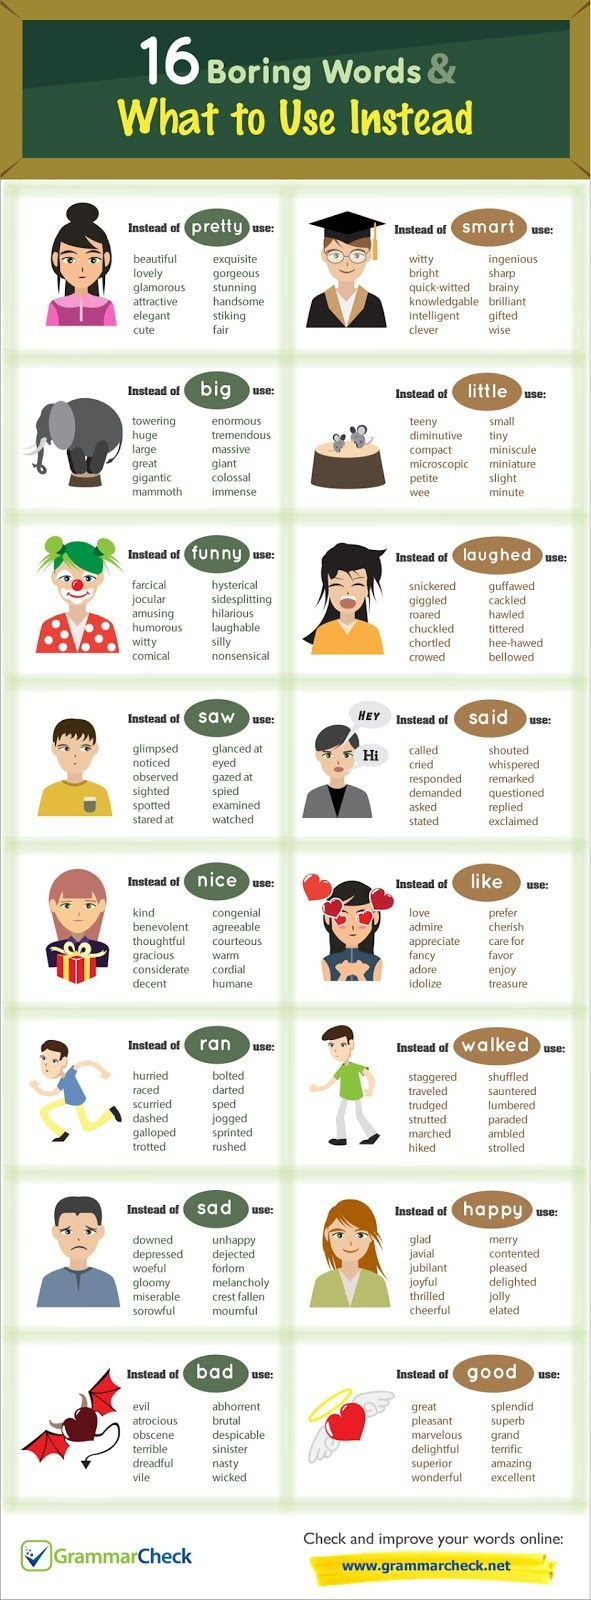 MOMFILES.com: 16 Boring Words & What to Use Instead